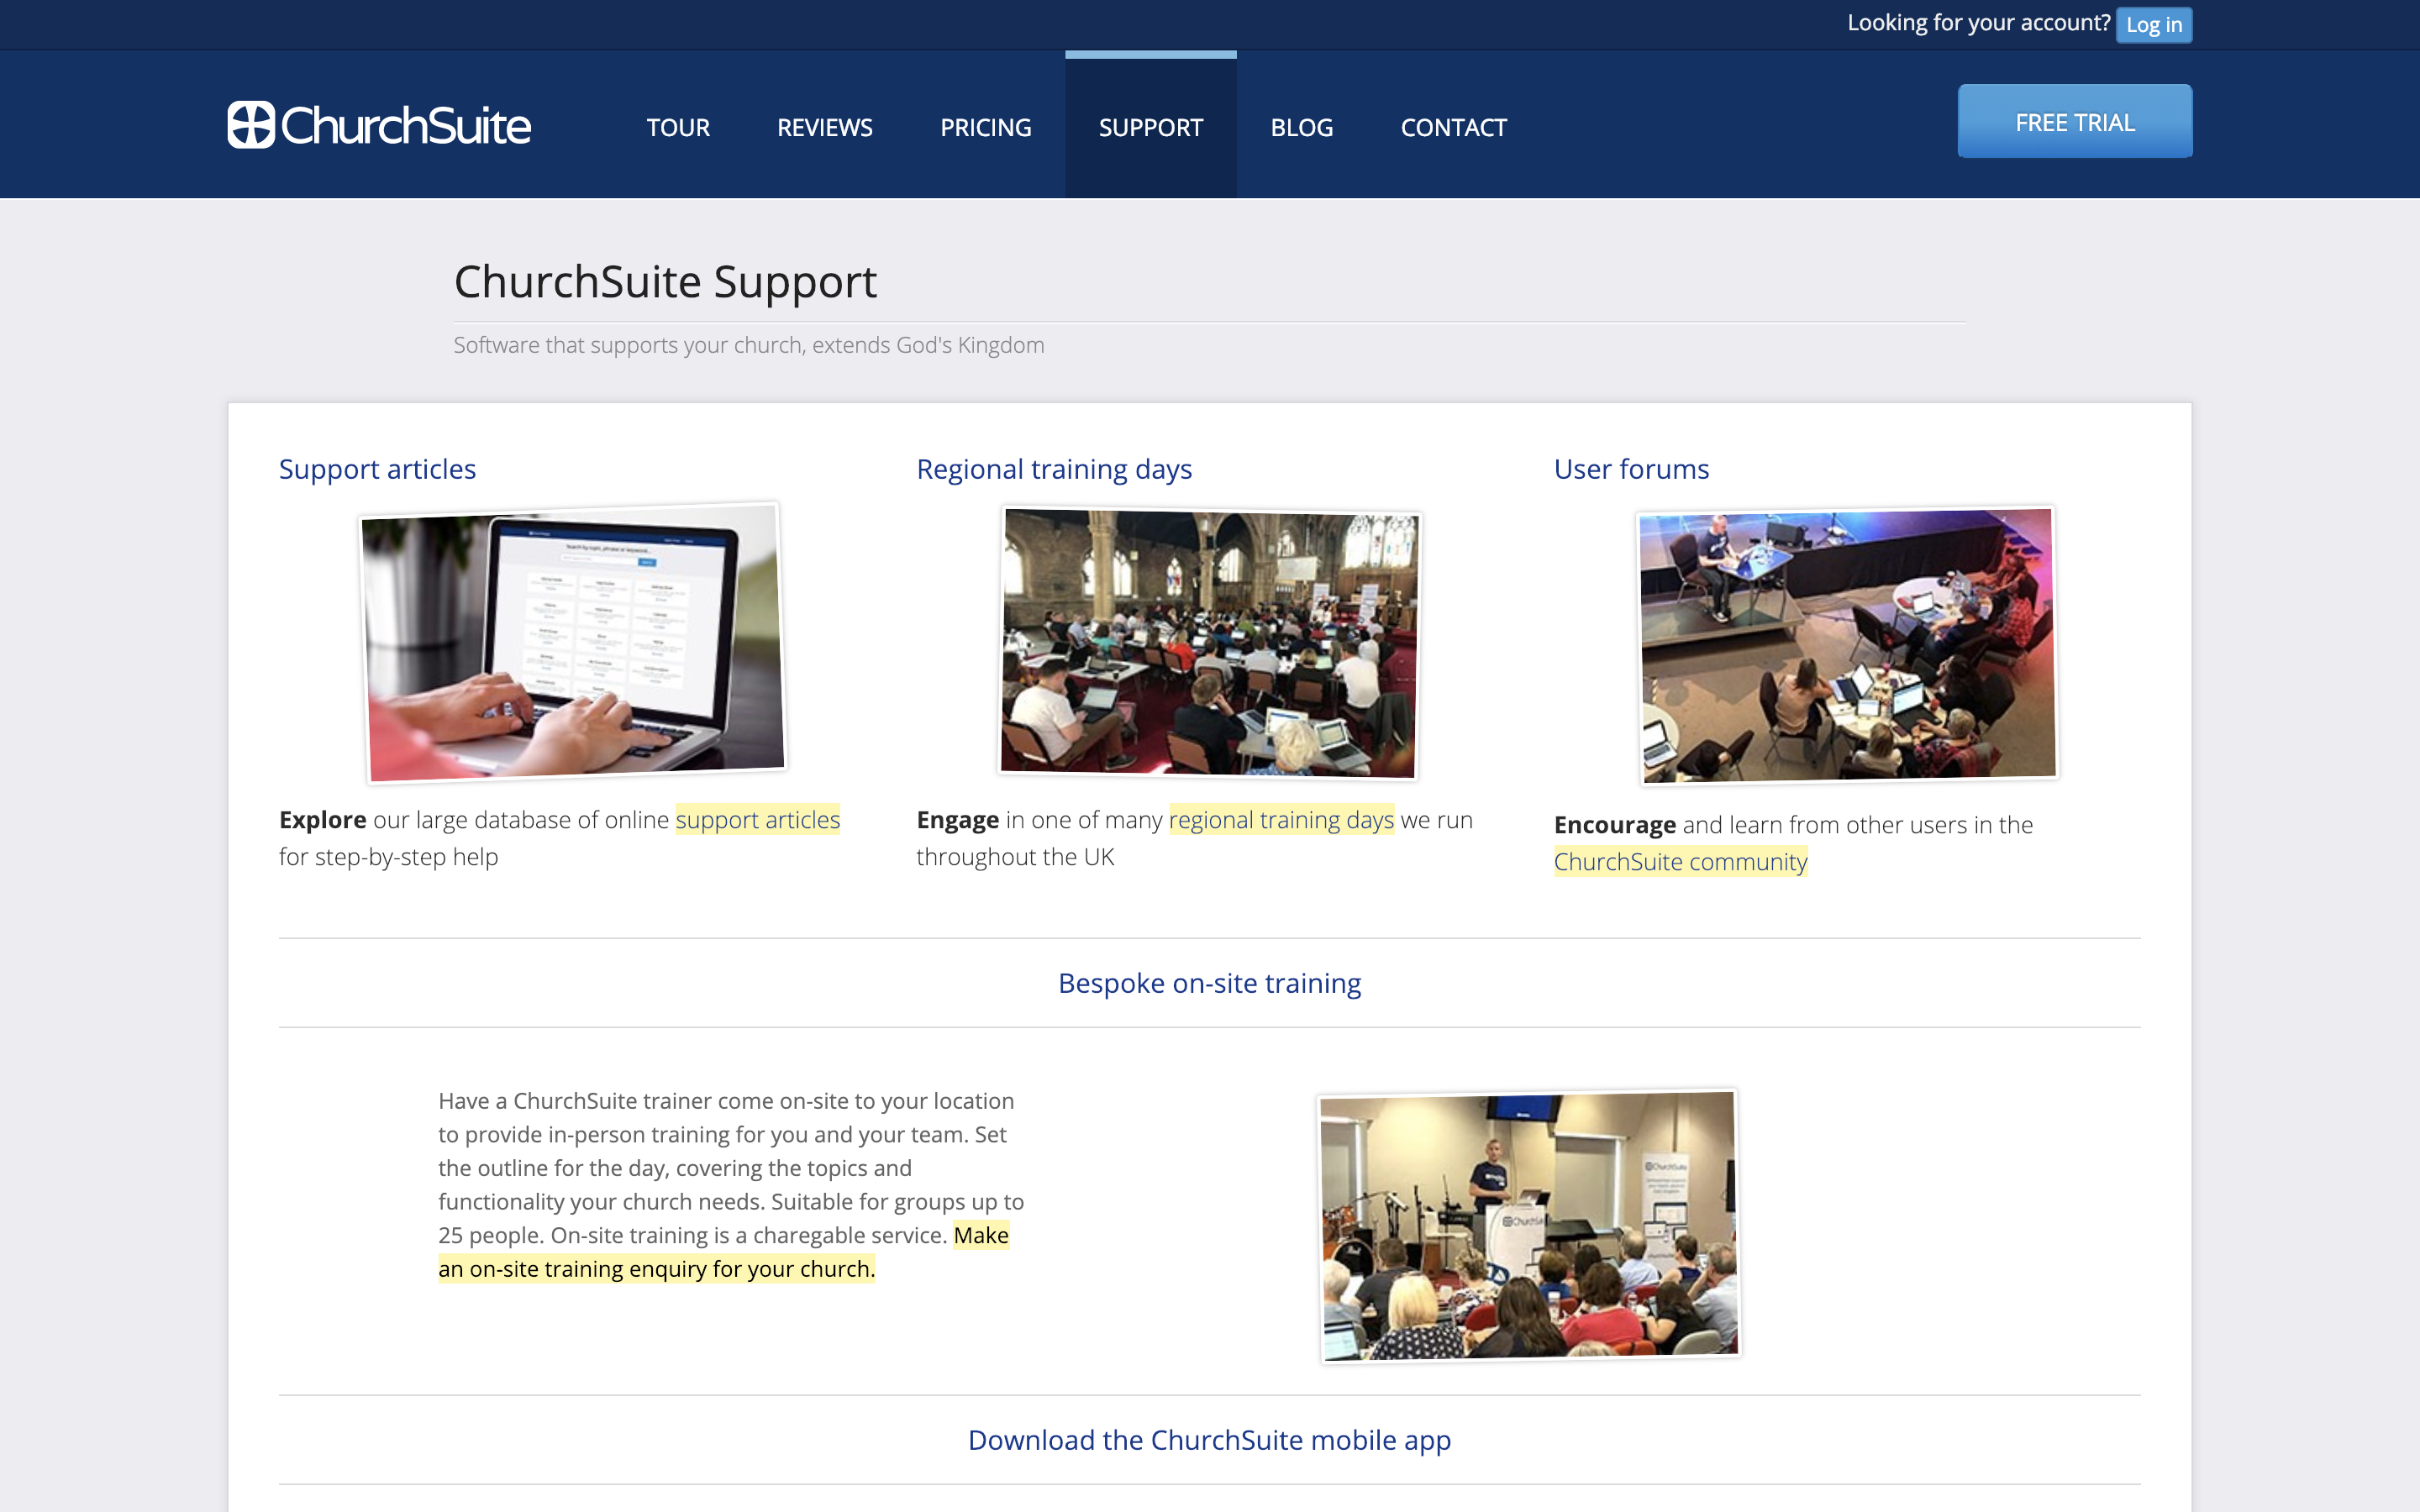 Getting help - ChurchSuite Support Articles